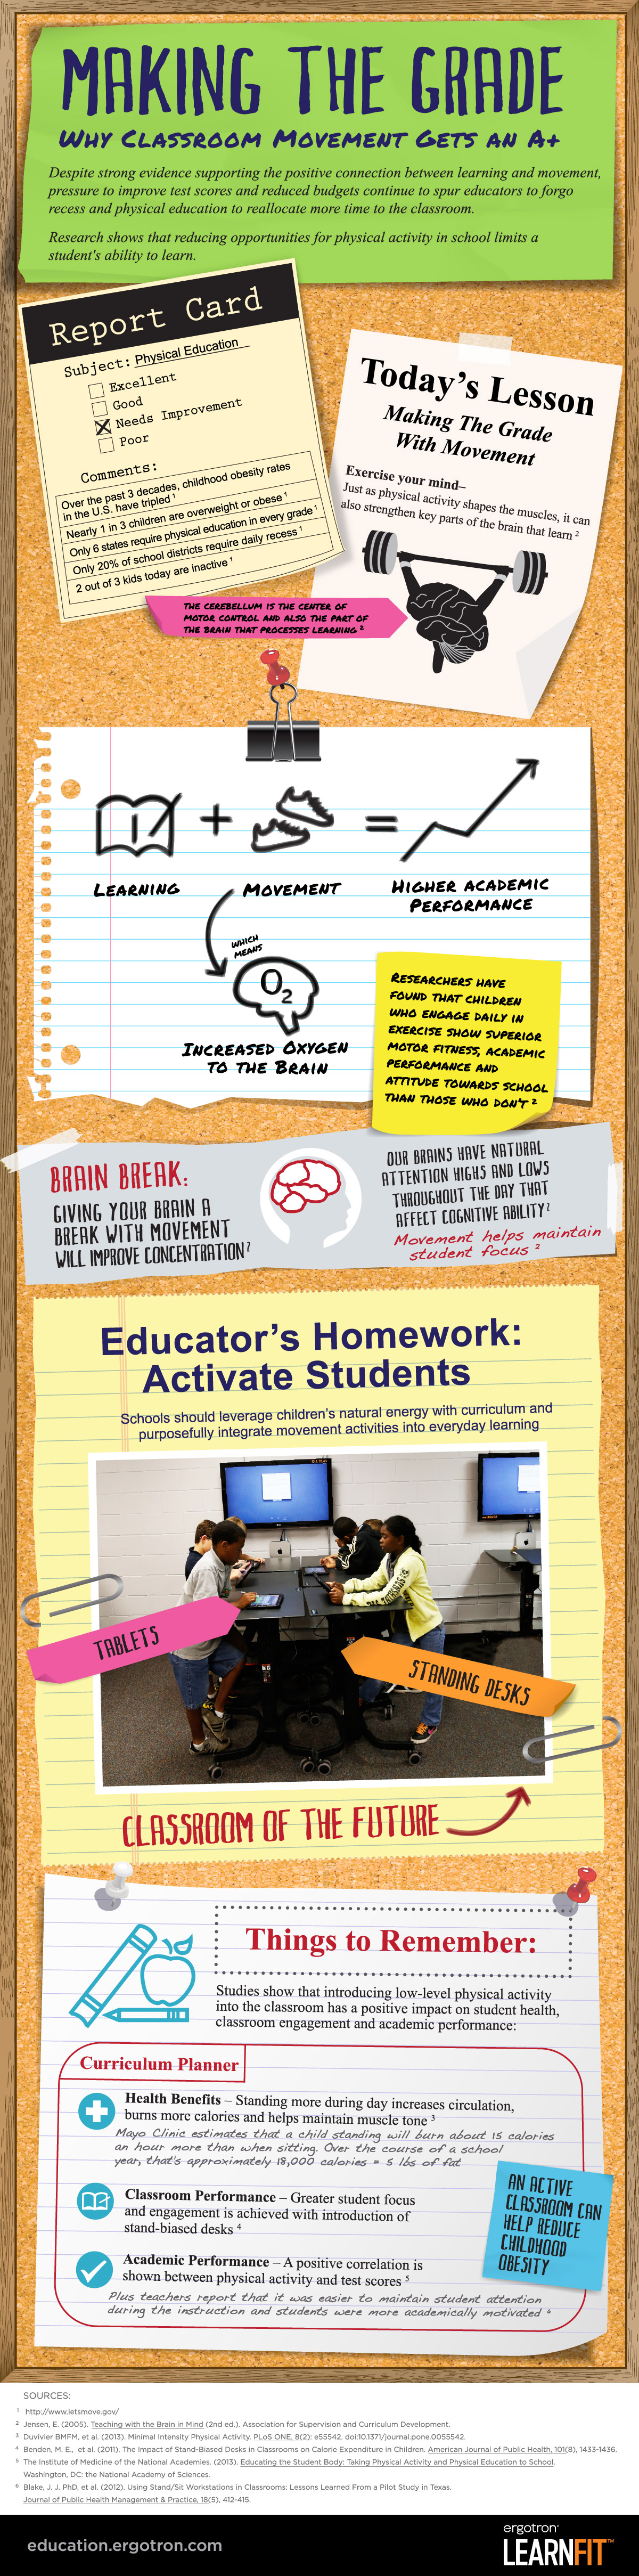 Classroom Movement Gets an A+ infographic